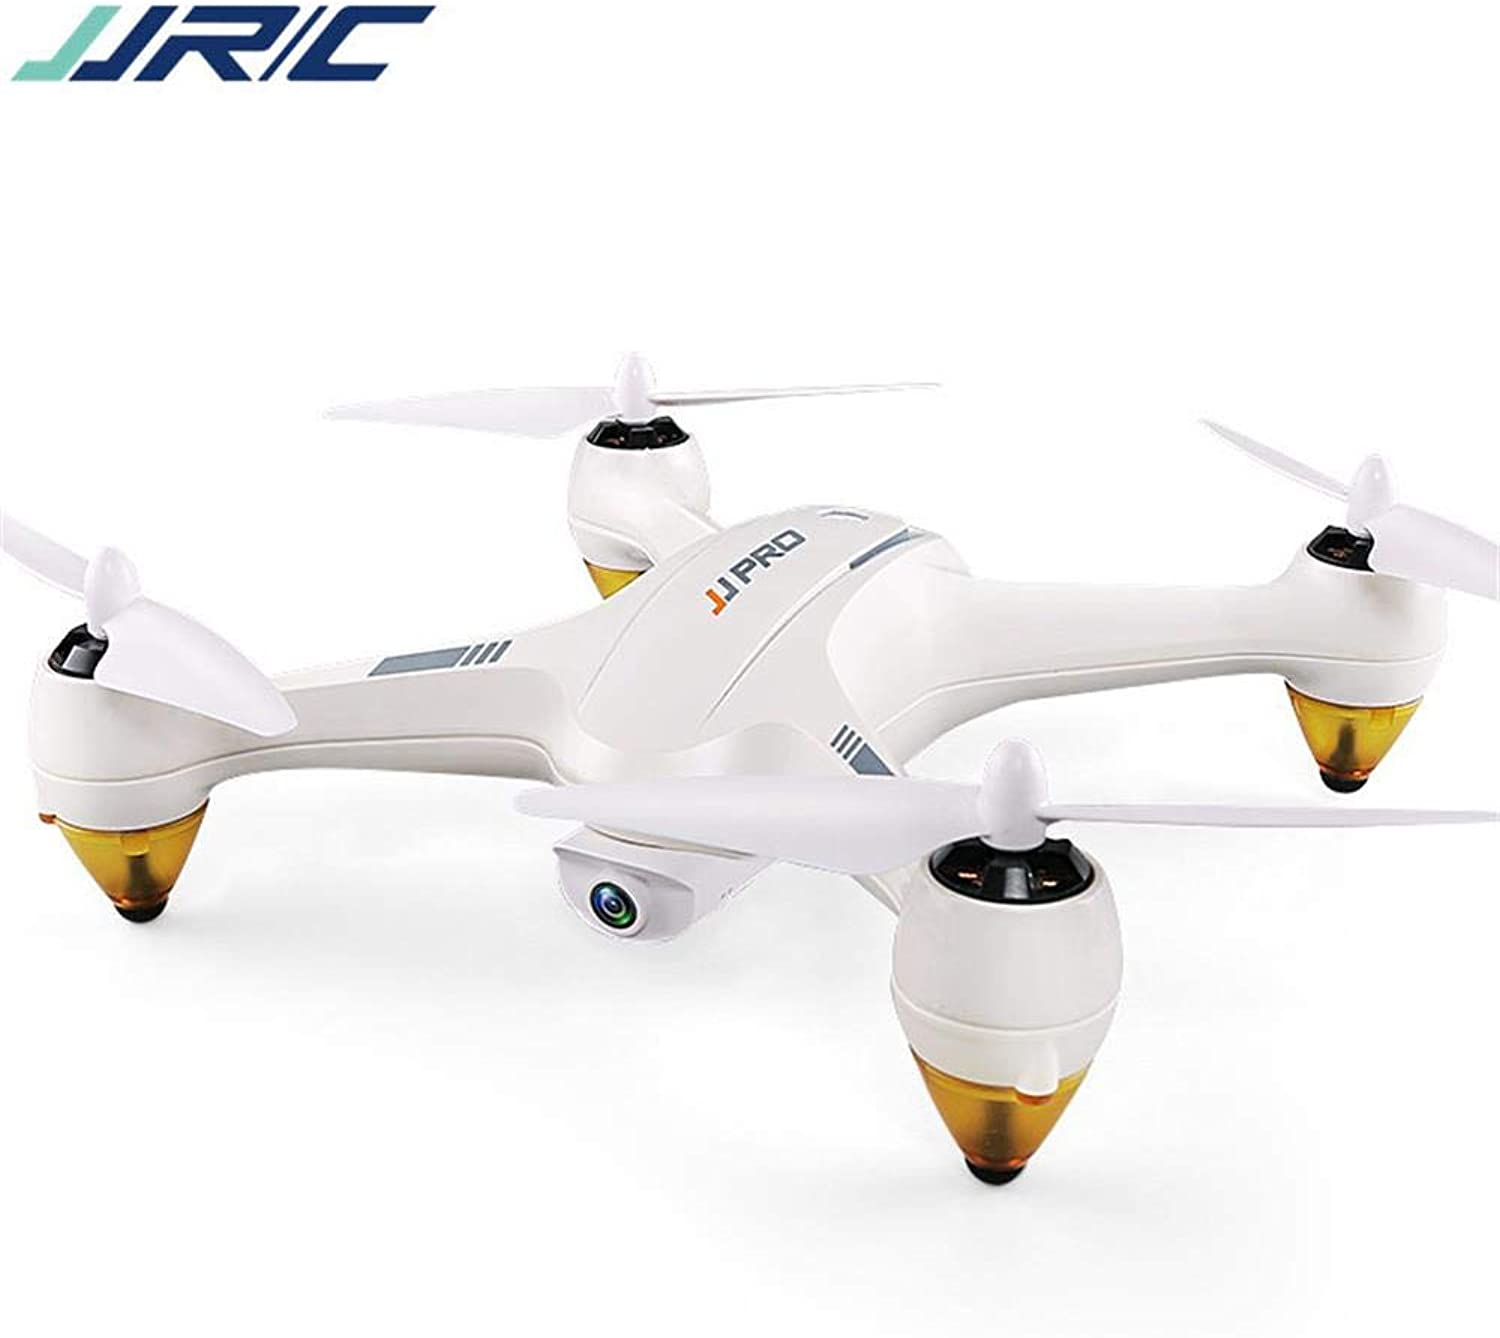 ahorra hasta un 80% M JJRC Aerial Camera Remote Control Four-Axis Four-Axis Four-Axis unmanned Aircraft brushless Motor Dual GPS Fixed-Point Return HD Map, blanco (English Version)  a la venta